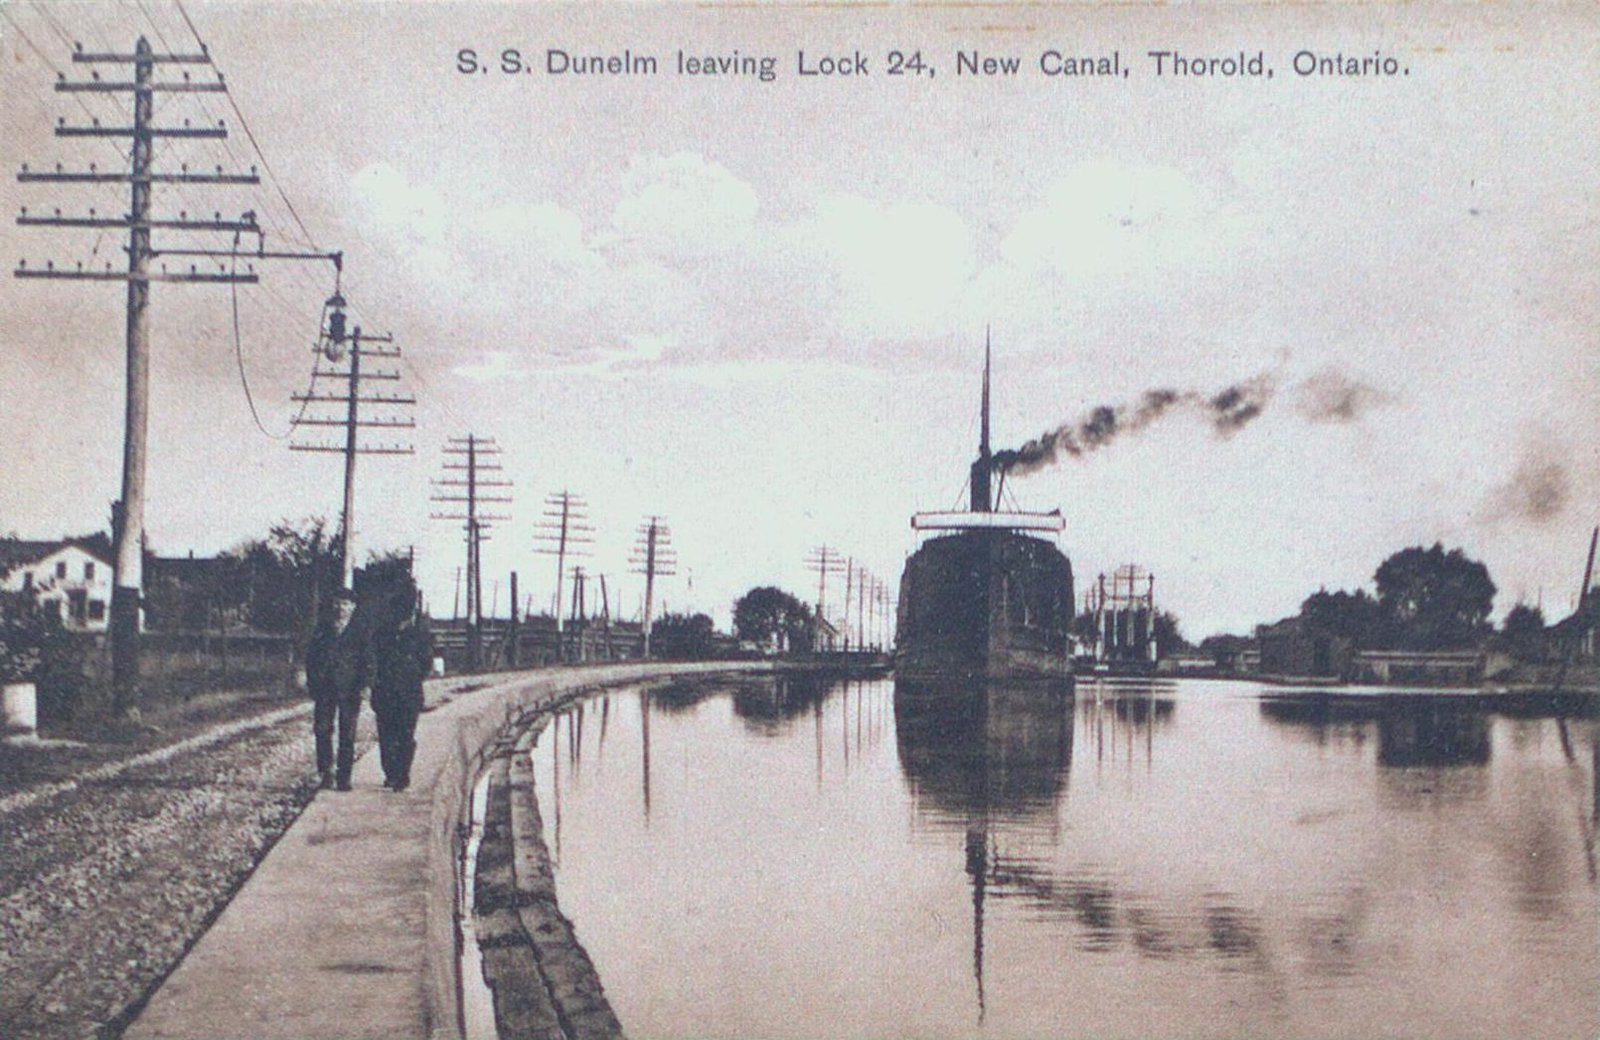 S.S. Dunelem on the New Canal in Thorold